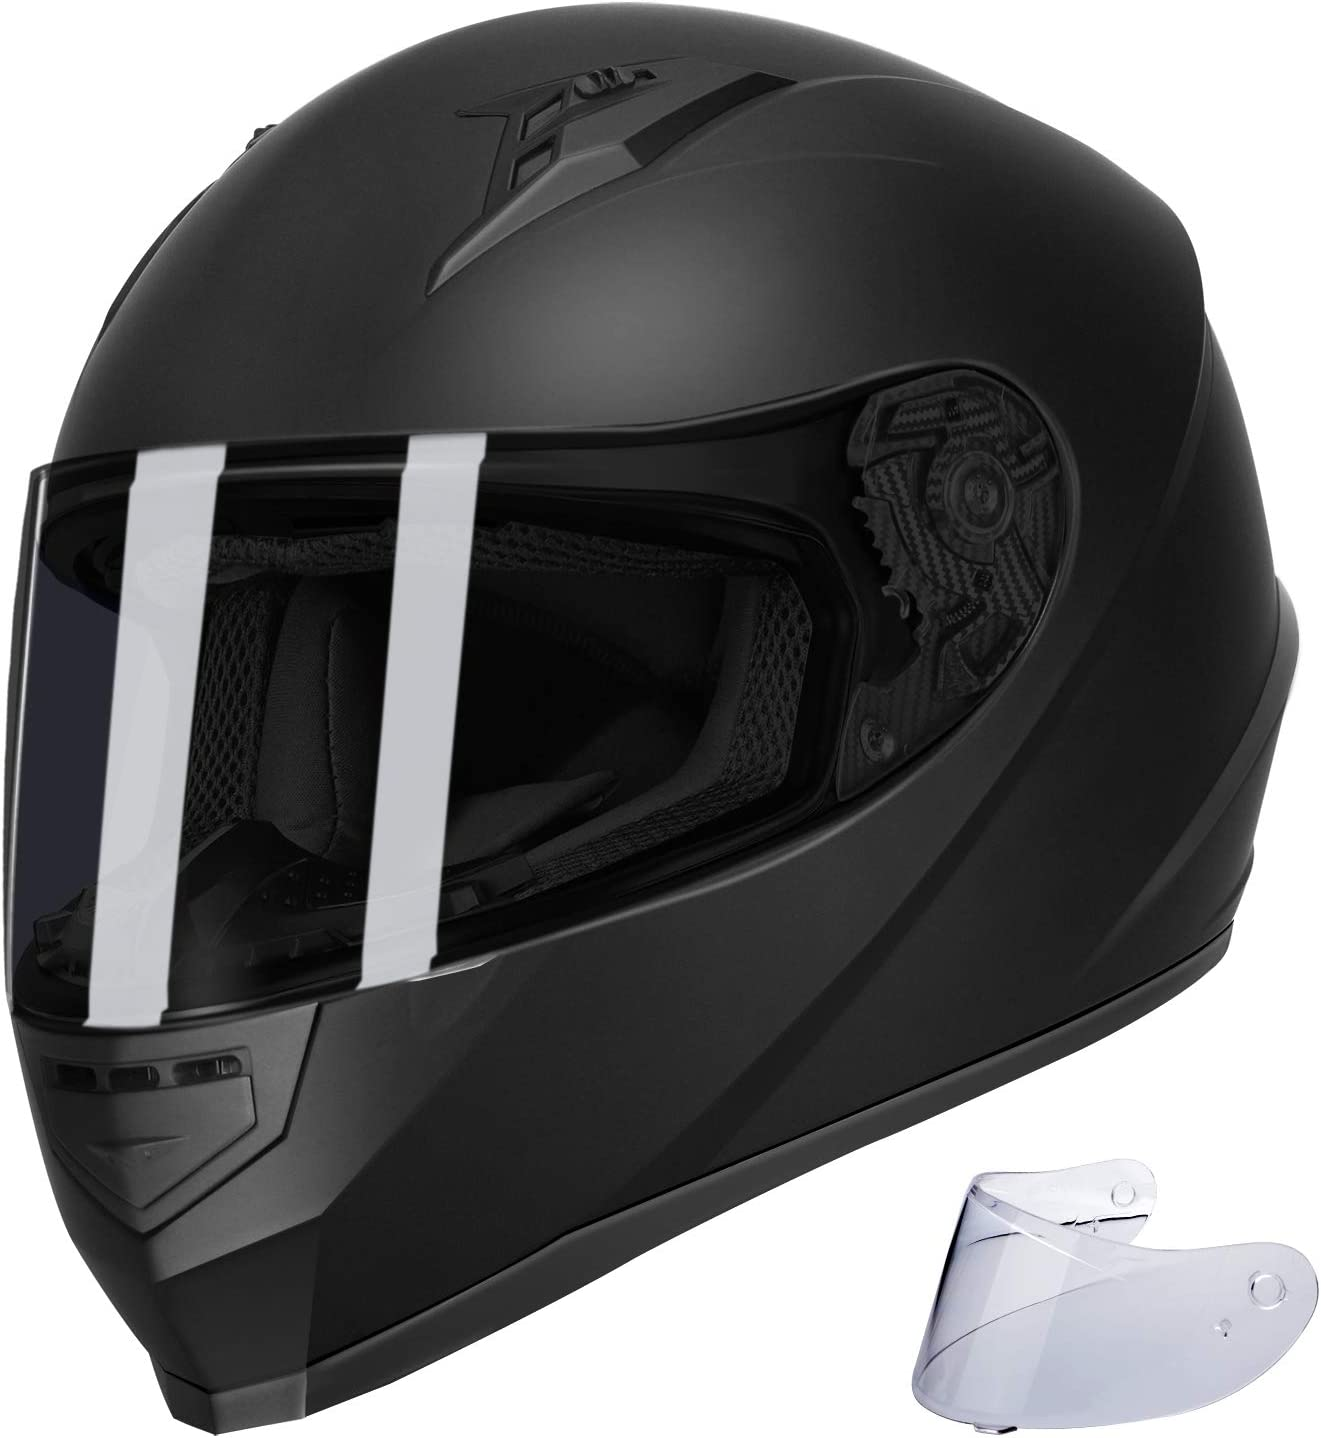 Amazon.com: GLX Unisex-Adult GX11 Compact Lightweight Full Face Motorcycle Street Bike Helmet with Extra Tinted Visor DOT Approved (Matte Black, Large): Automotive